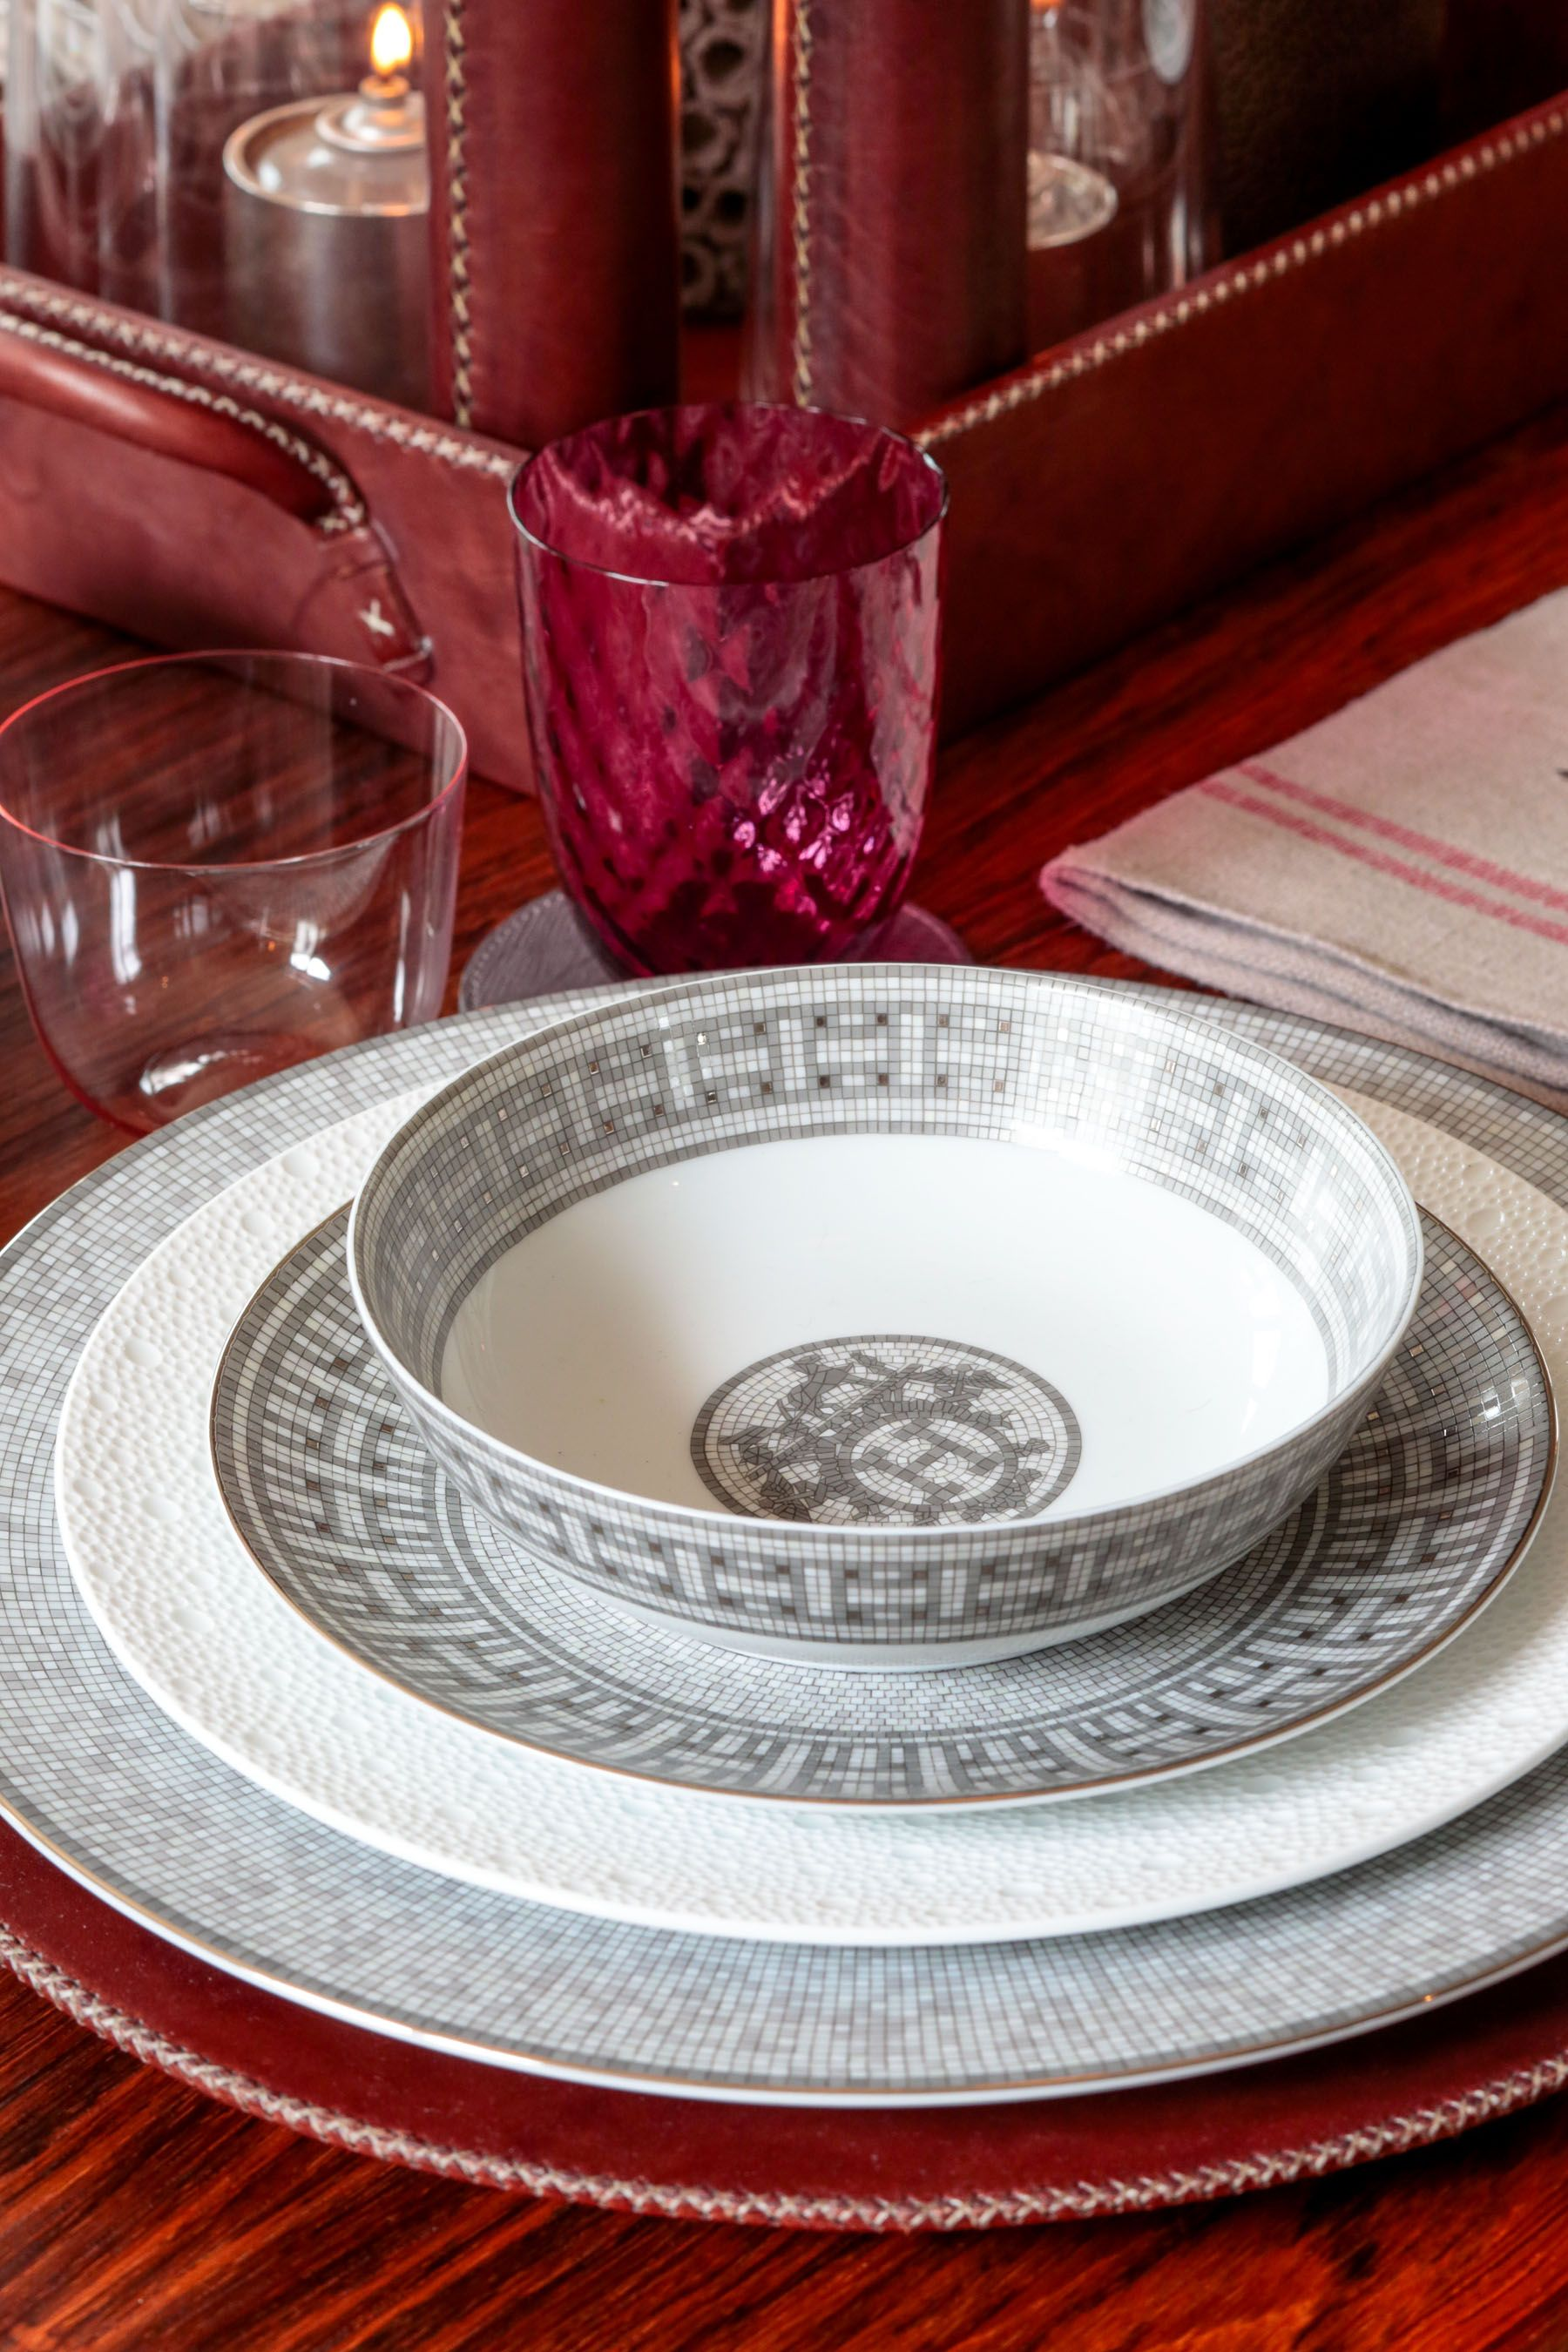 Hermes Mosaique au 24 Platine dinnerware paired with Bernardaud Egee and Sol Y Luna saddle leather & Hermes Mosaique au 24 Platine dinnerware paired with Bernardaud Egee ...